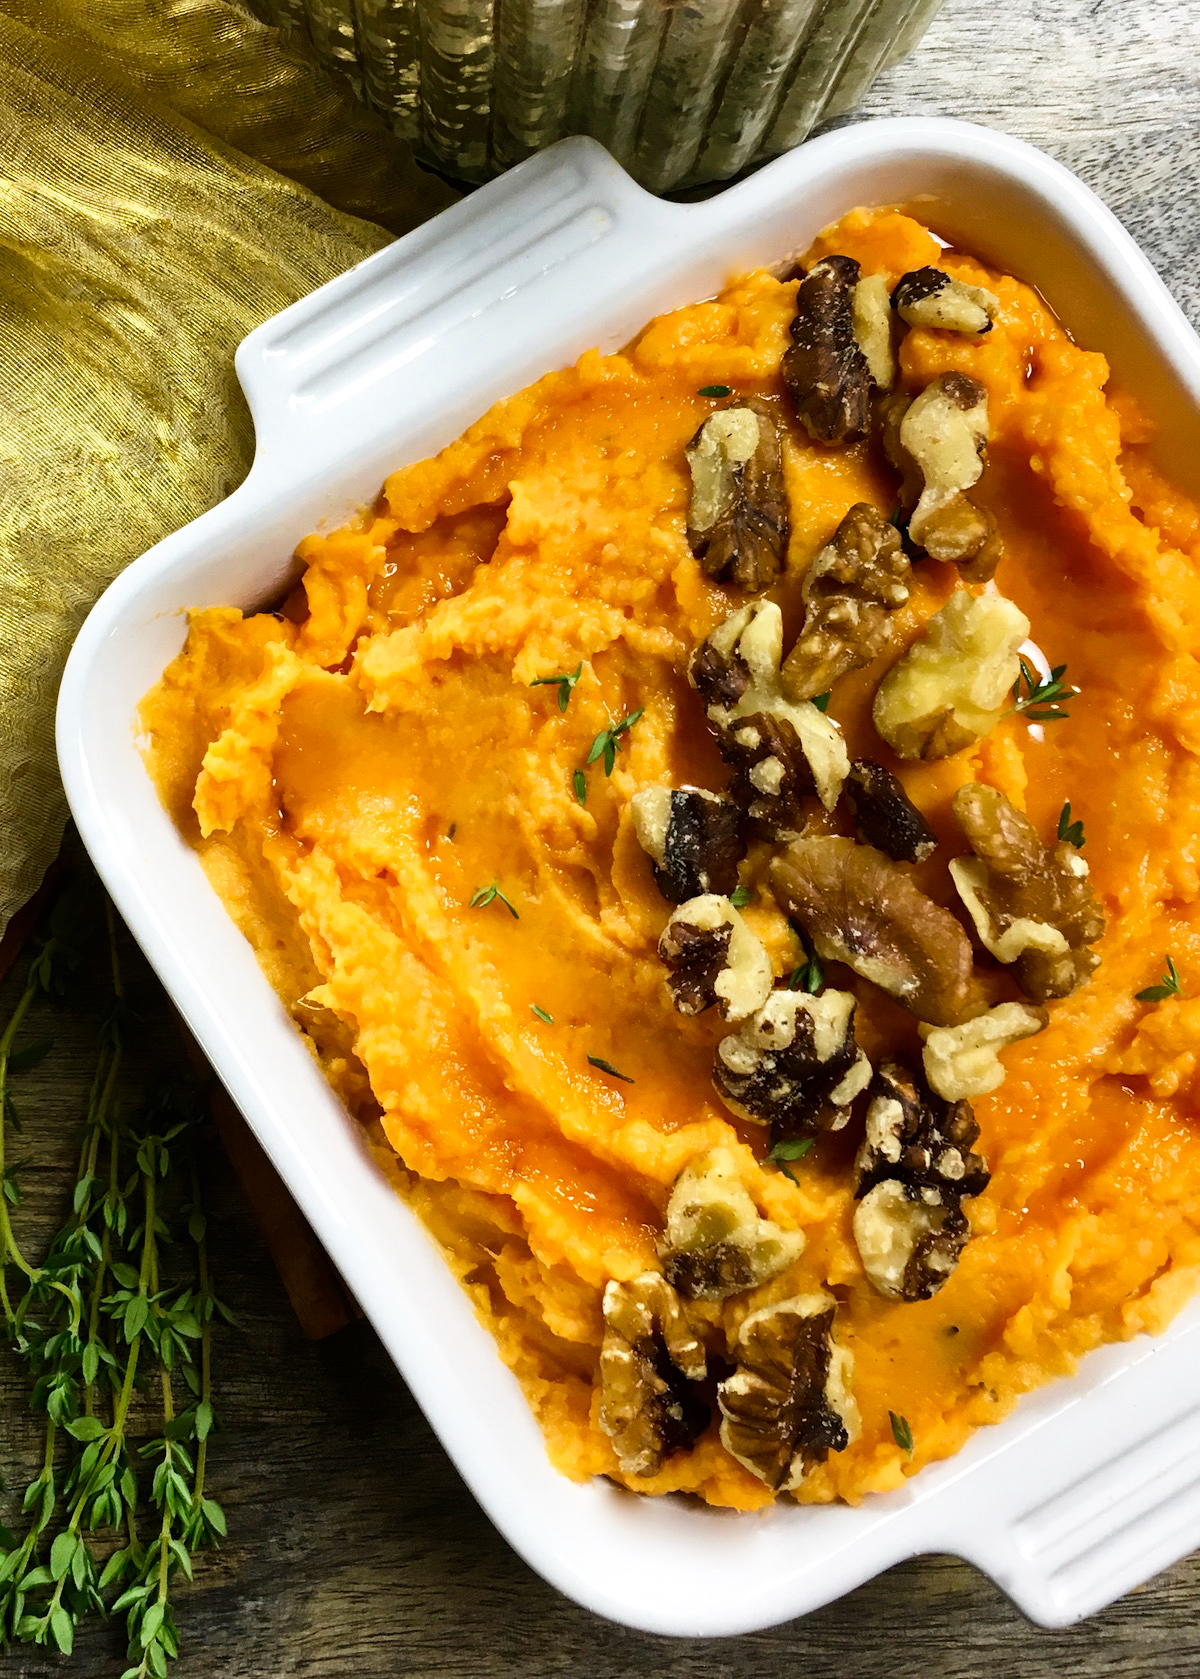 These rich and creamy mashed sweet potatoes are the perfect side dish for just about any holiday meal. However, these savory sweet potatoes so quick and easy to make, you'll want to enjoy them throughout the year. #Thanksgiving #Christmas #Savory #SideDish